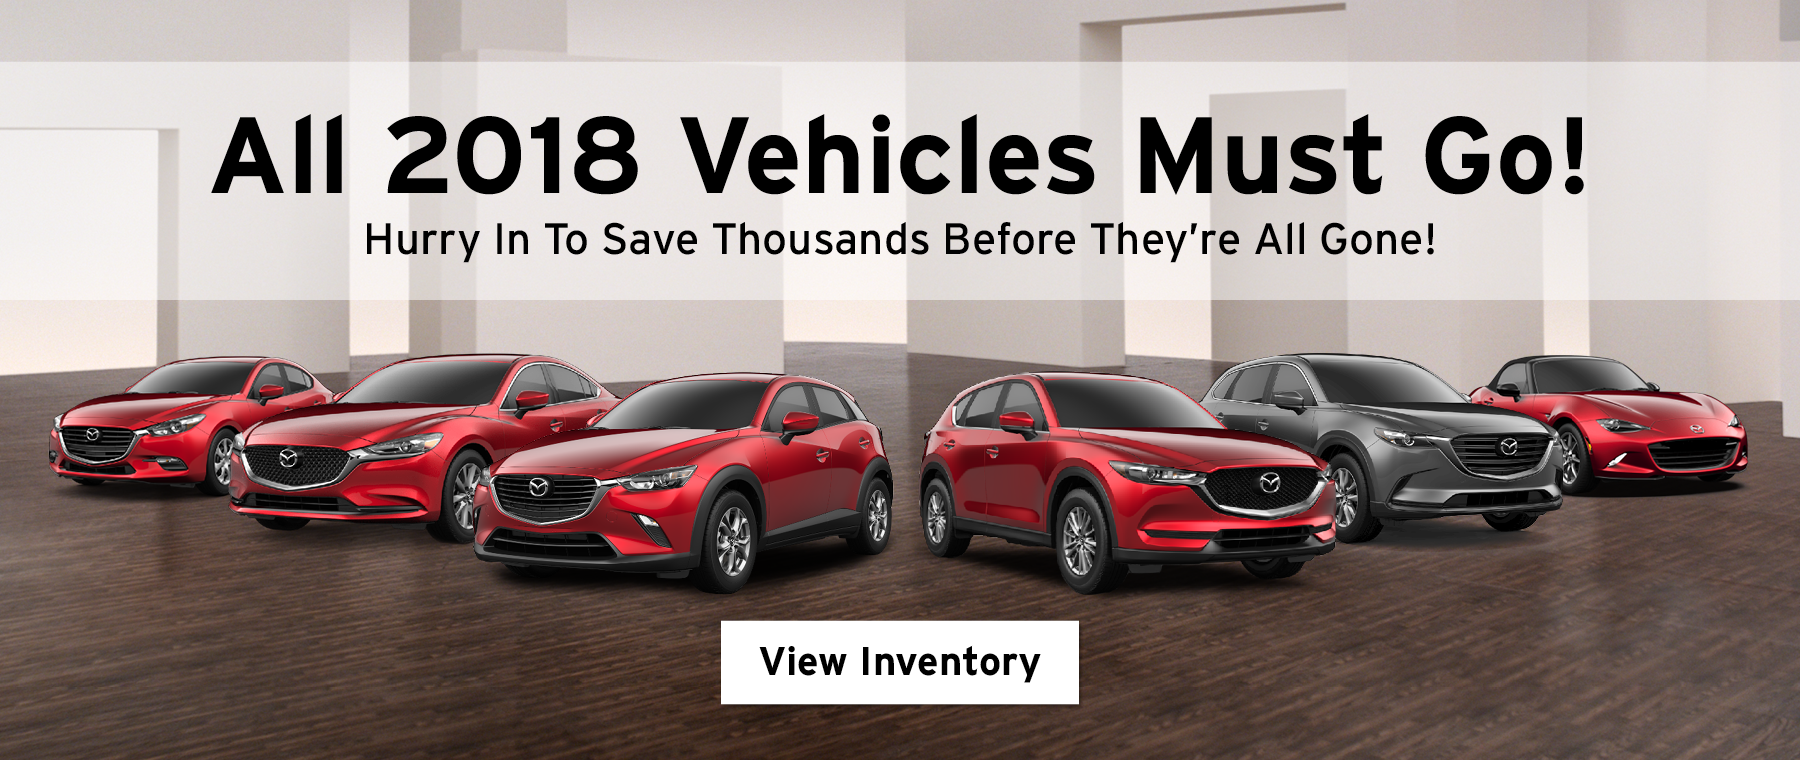 All 2018 vehicles must go! Hurry in to save thousands before they're all gone! View inventory.